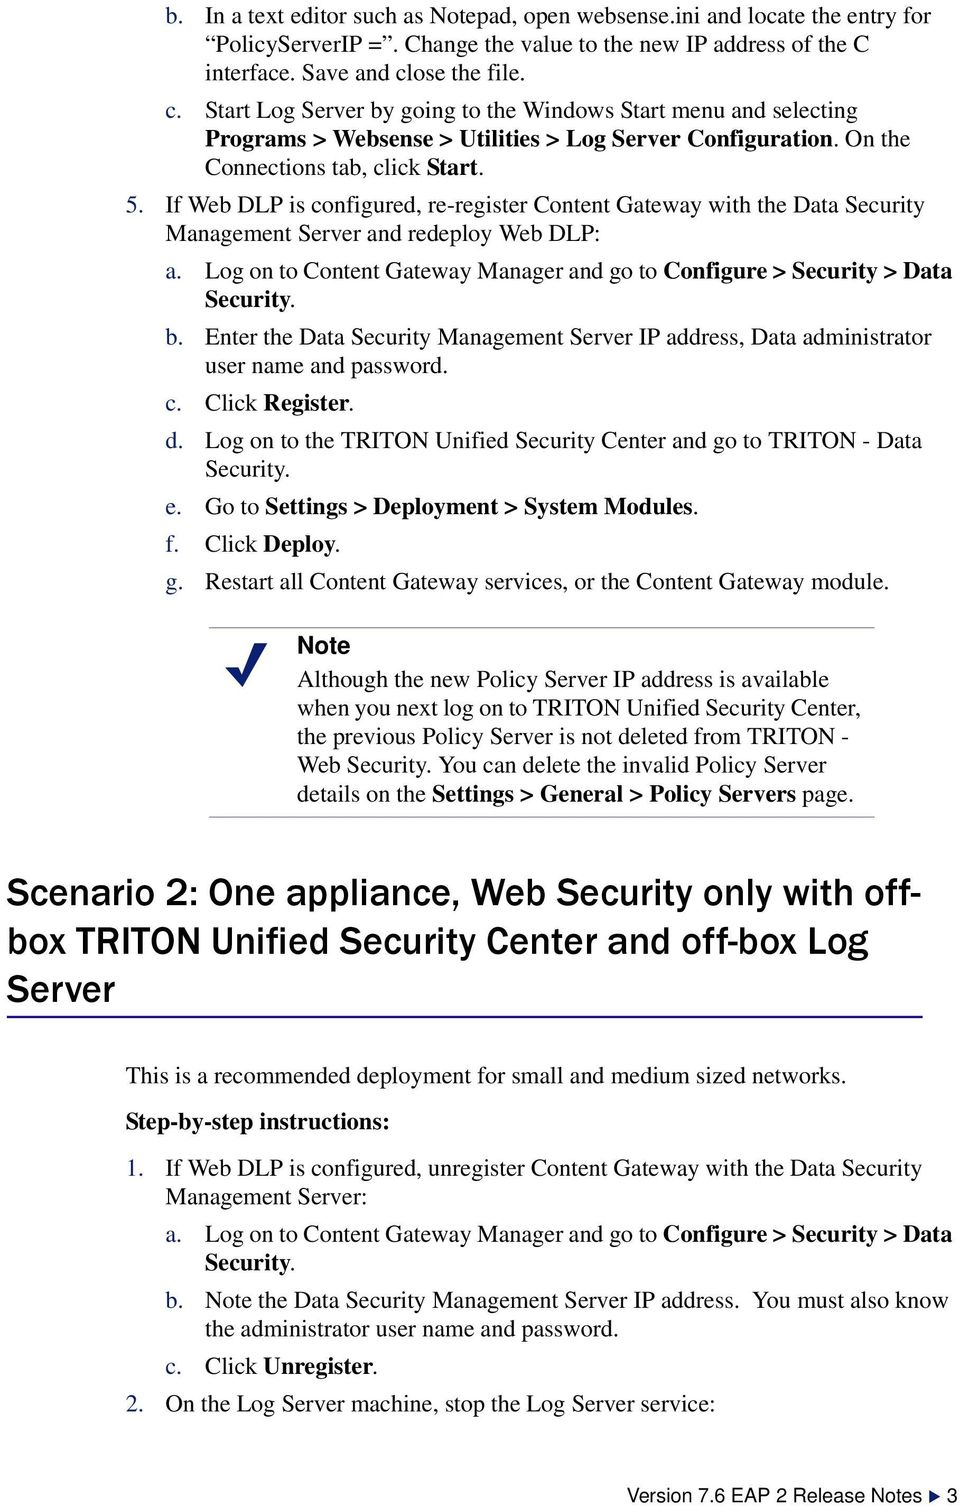 If Web DLP is configured, re-register Content Gateway with the Data Security Management Server and redeploy Web DLP: b.